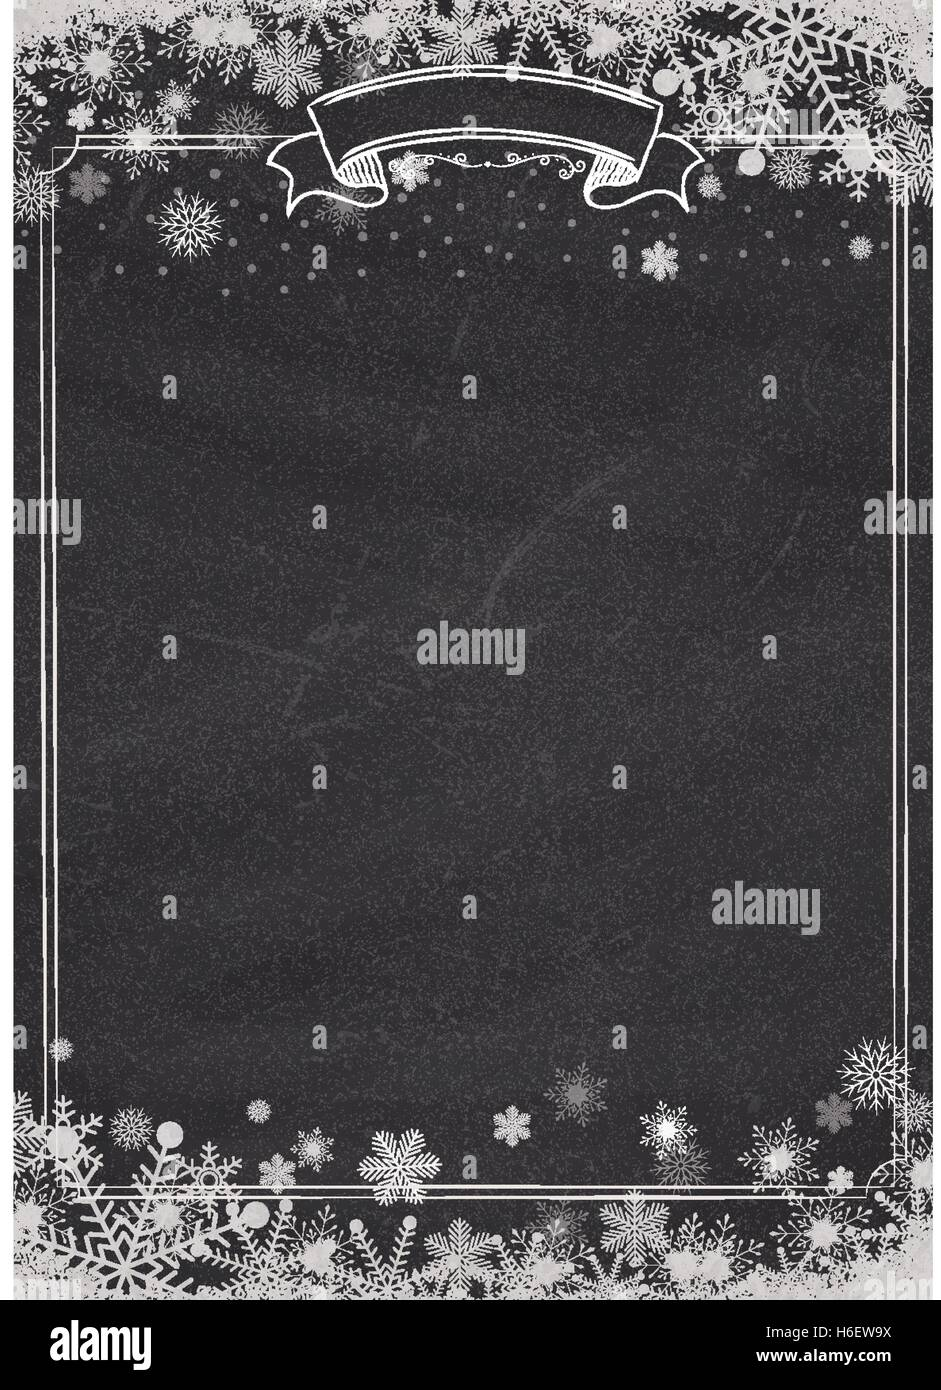 A4 Size Vertical Cafe Menu Classic Blackboard Background With Winter